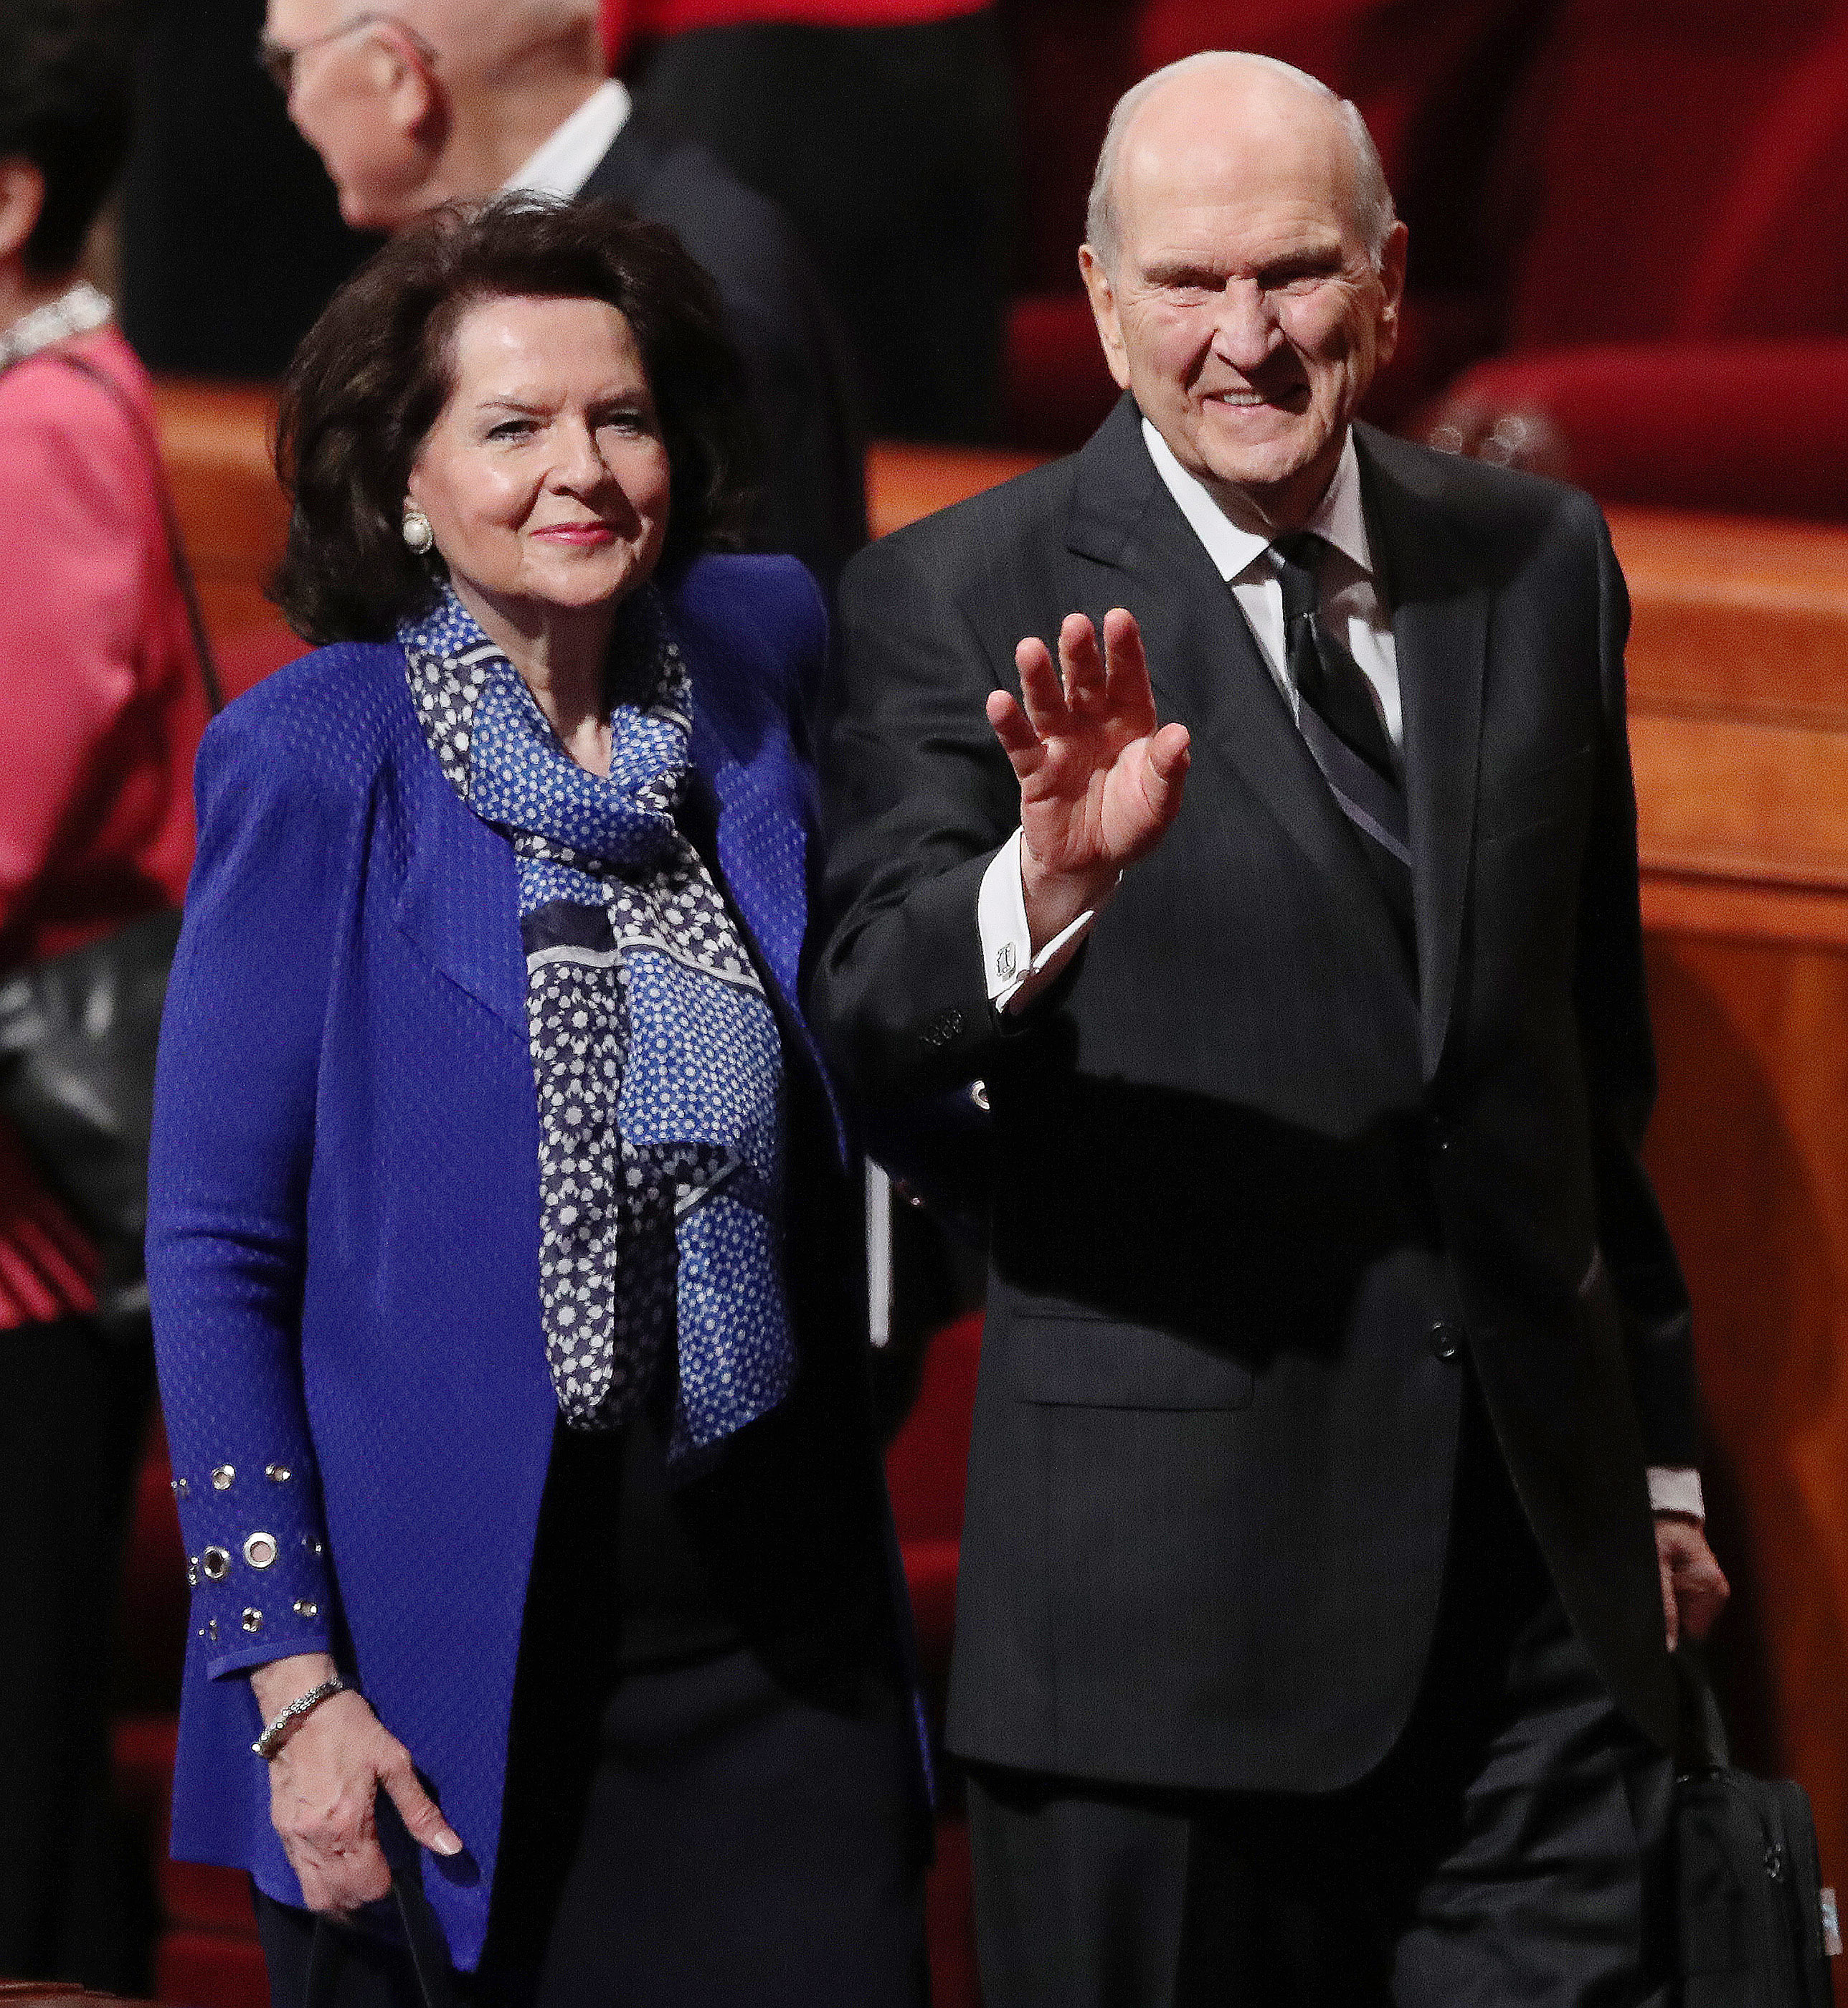 President Russell M. Nelson of The Church of Jesus Christ of Latter-day Saints and his wife, Sister Wendy Watson, wave as they leave the 188th Semiannual General Conference of The Church of Jesus Christ of Latter-day Saints in the Conference Center in Salt Lake City on Saturday, Oct. 6, 2018.